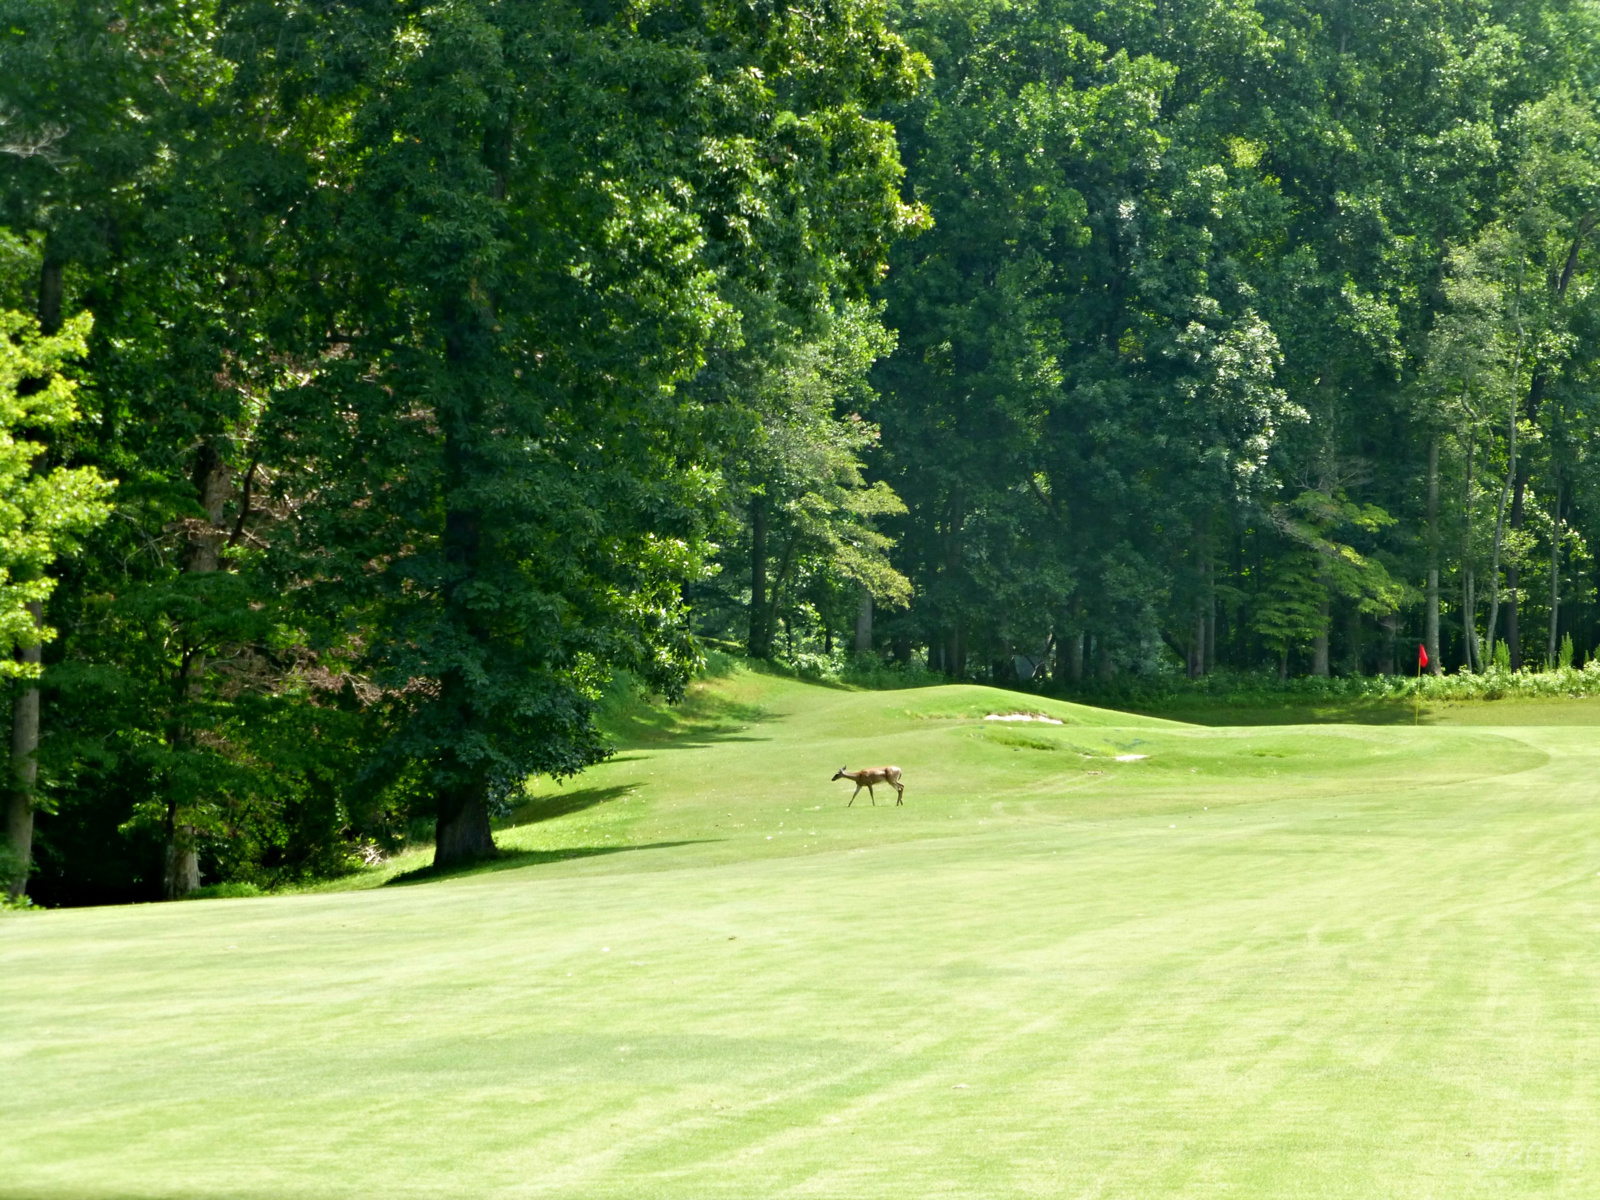 July 27, 2018 - Deer crossing Hole 11 on the Bent Tree Golf Course